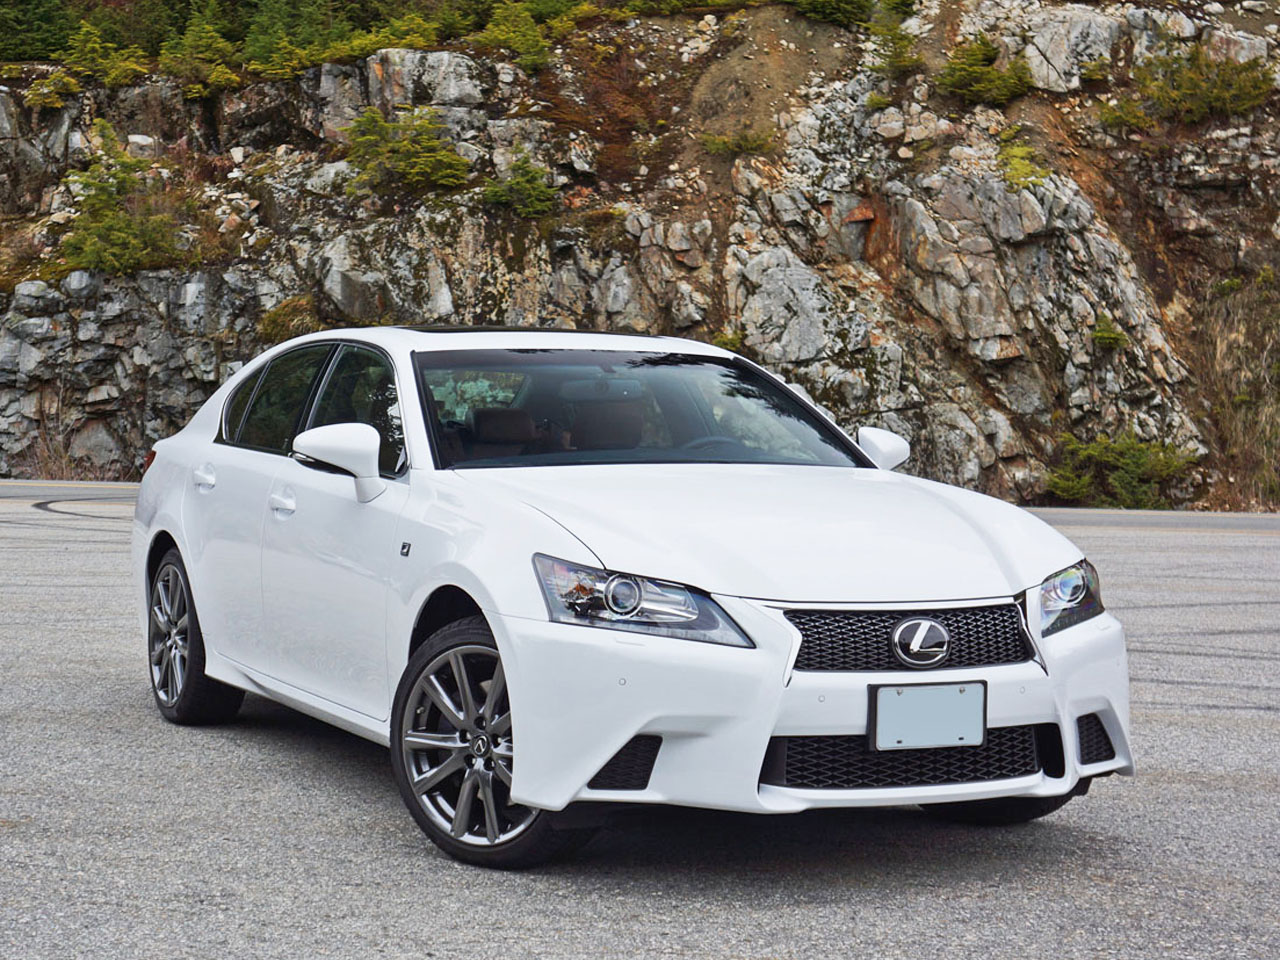 f lexus the awd report format review automotive chavez gs sport